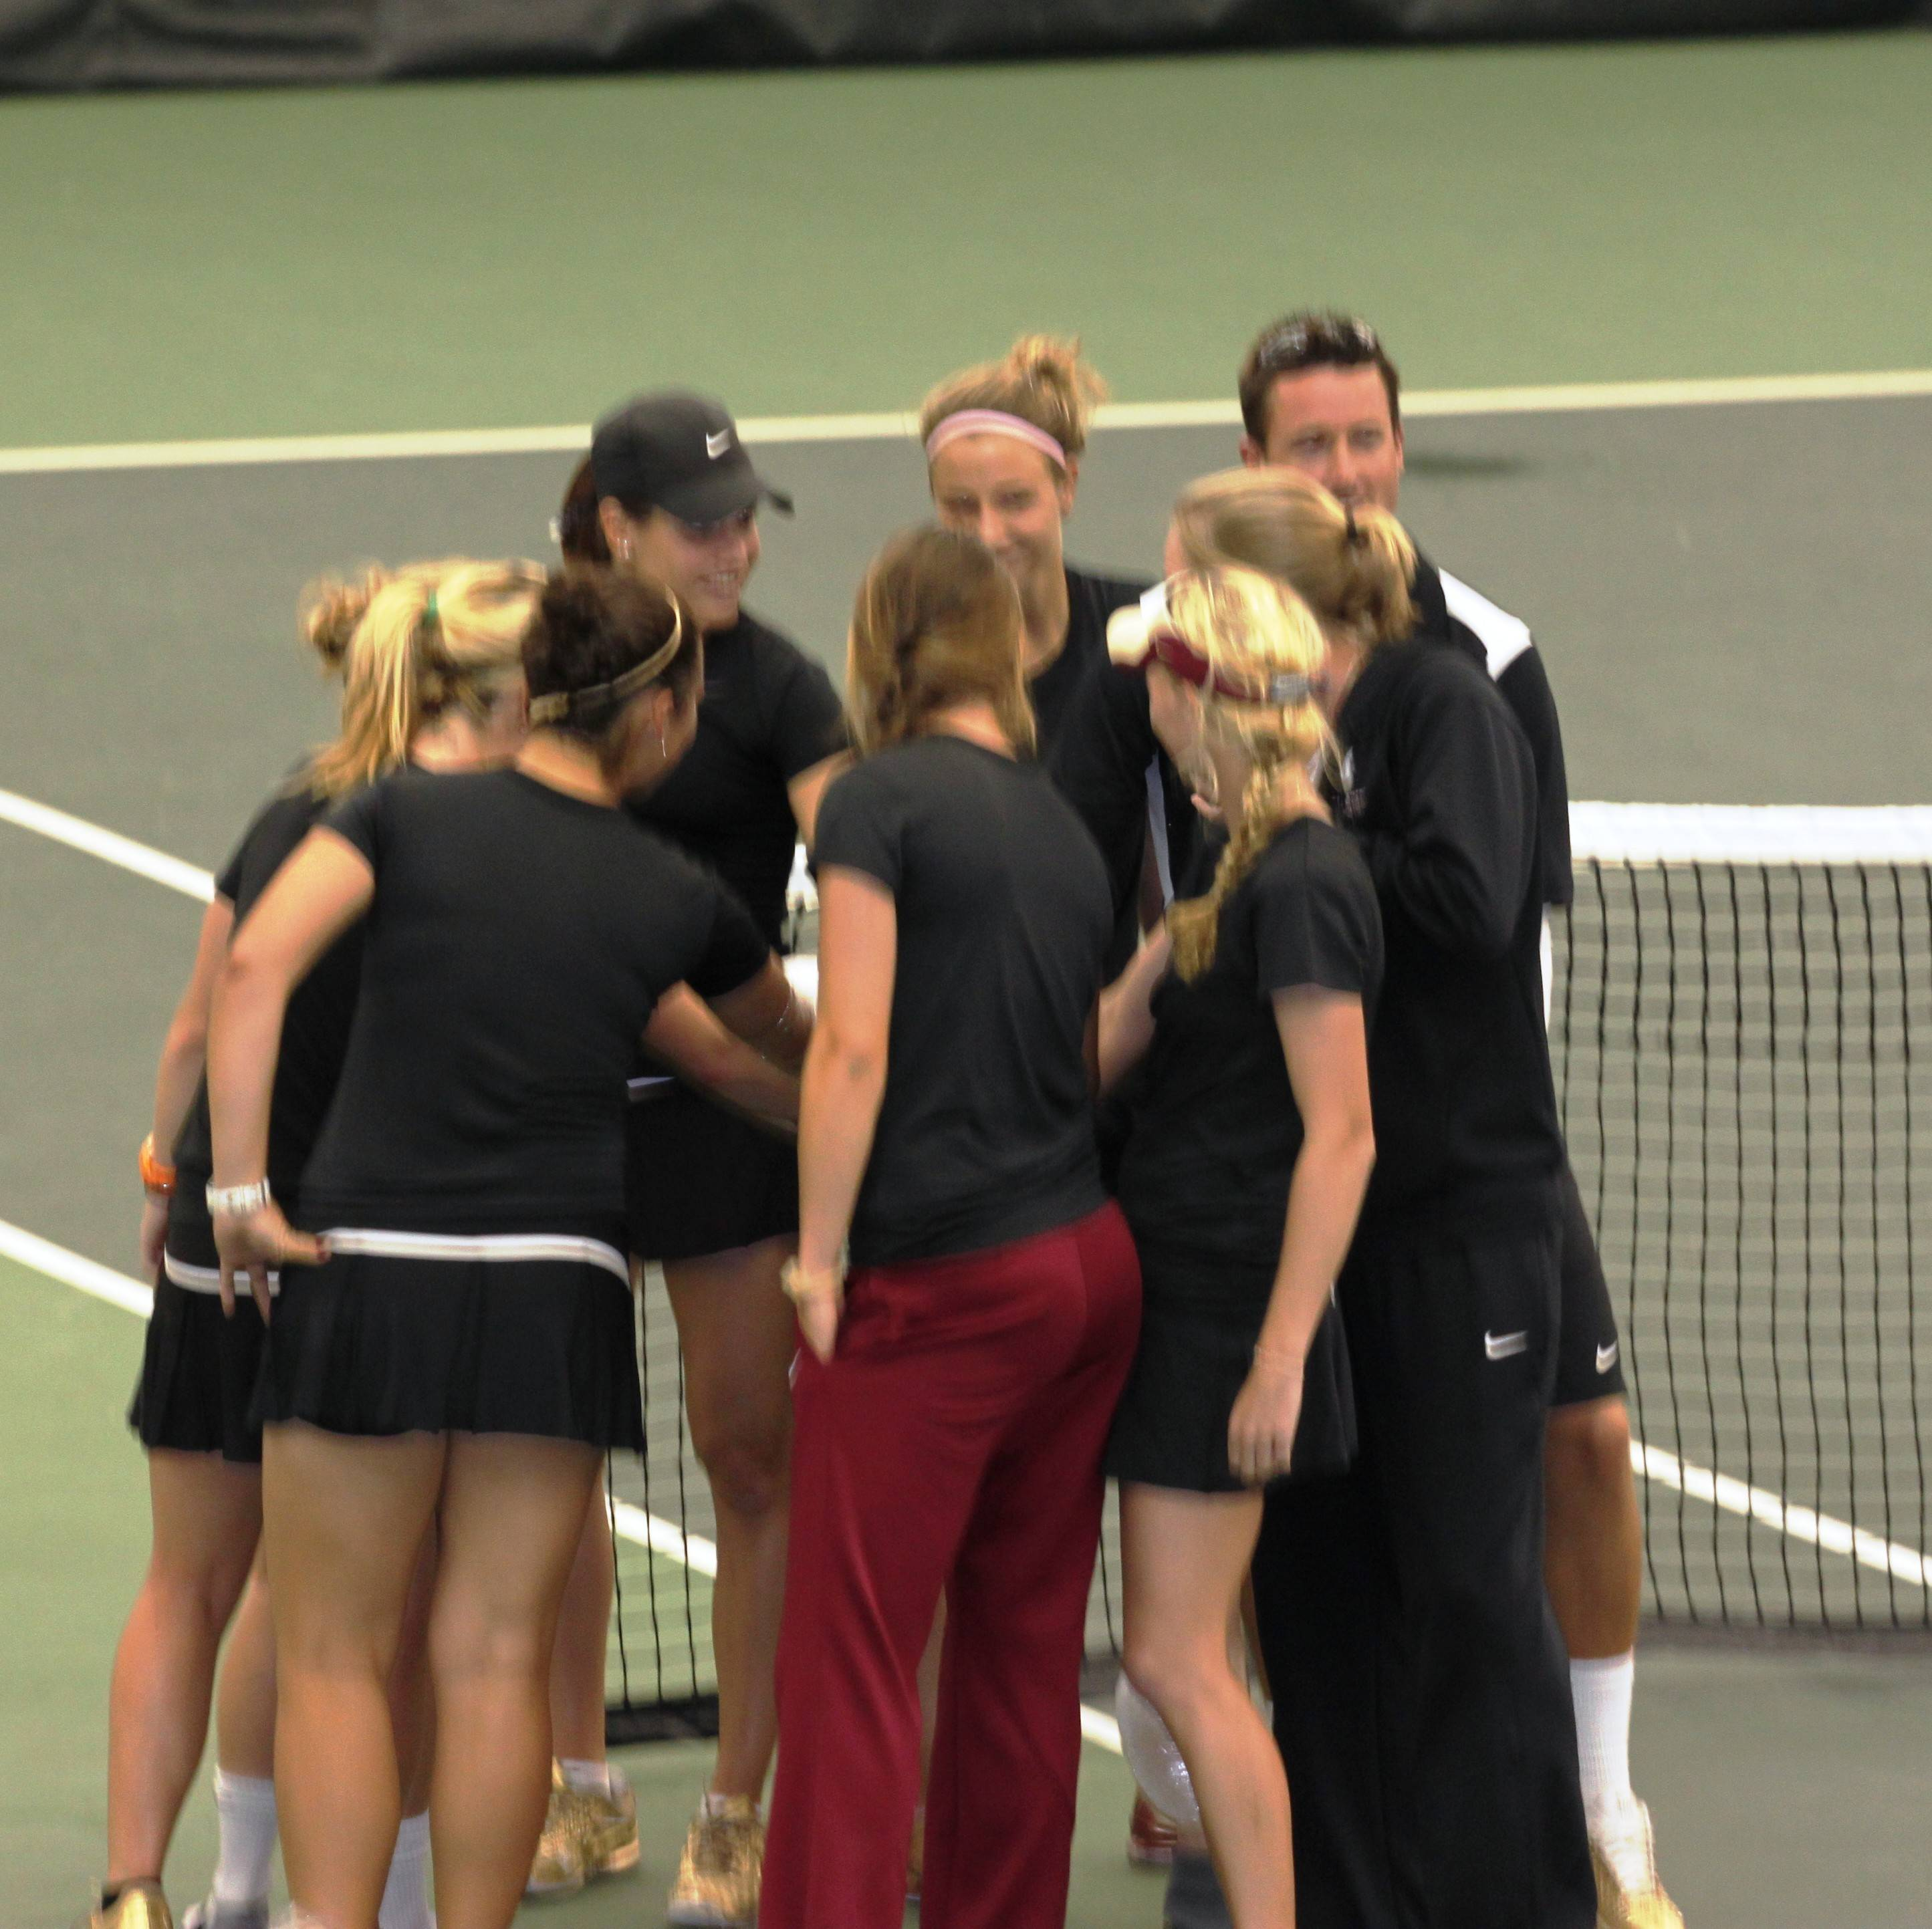 One final team huddle after the match.